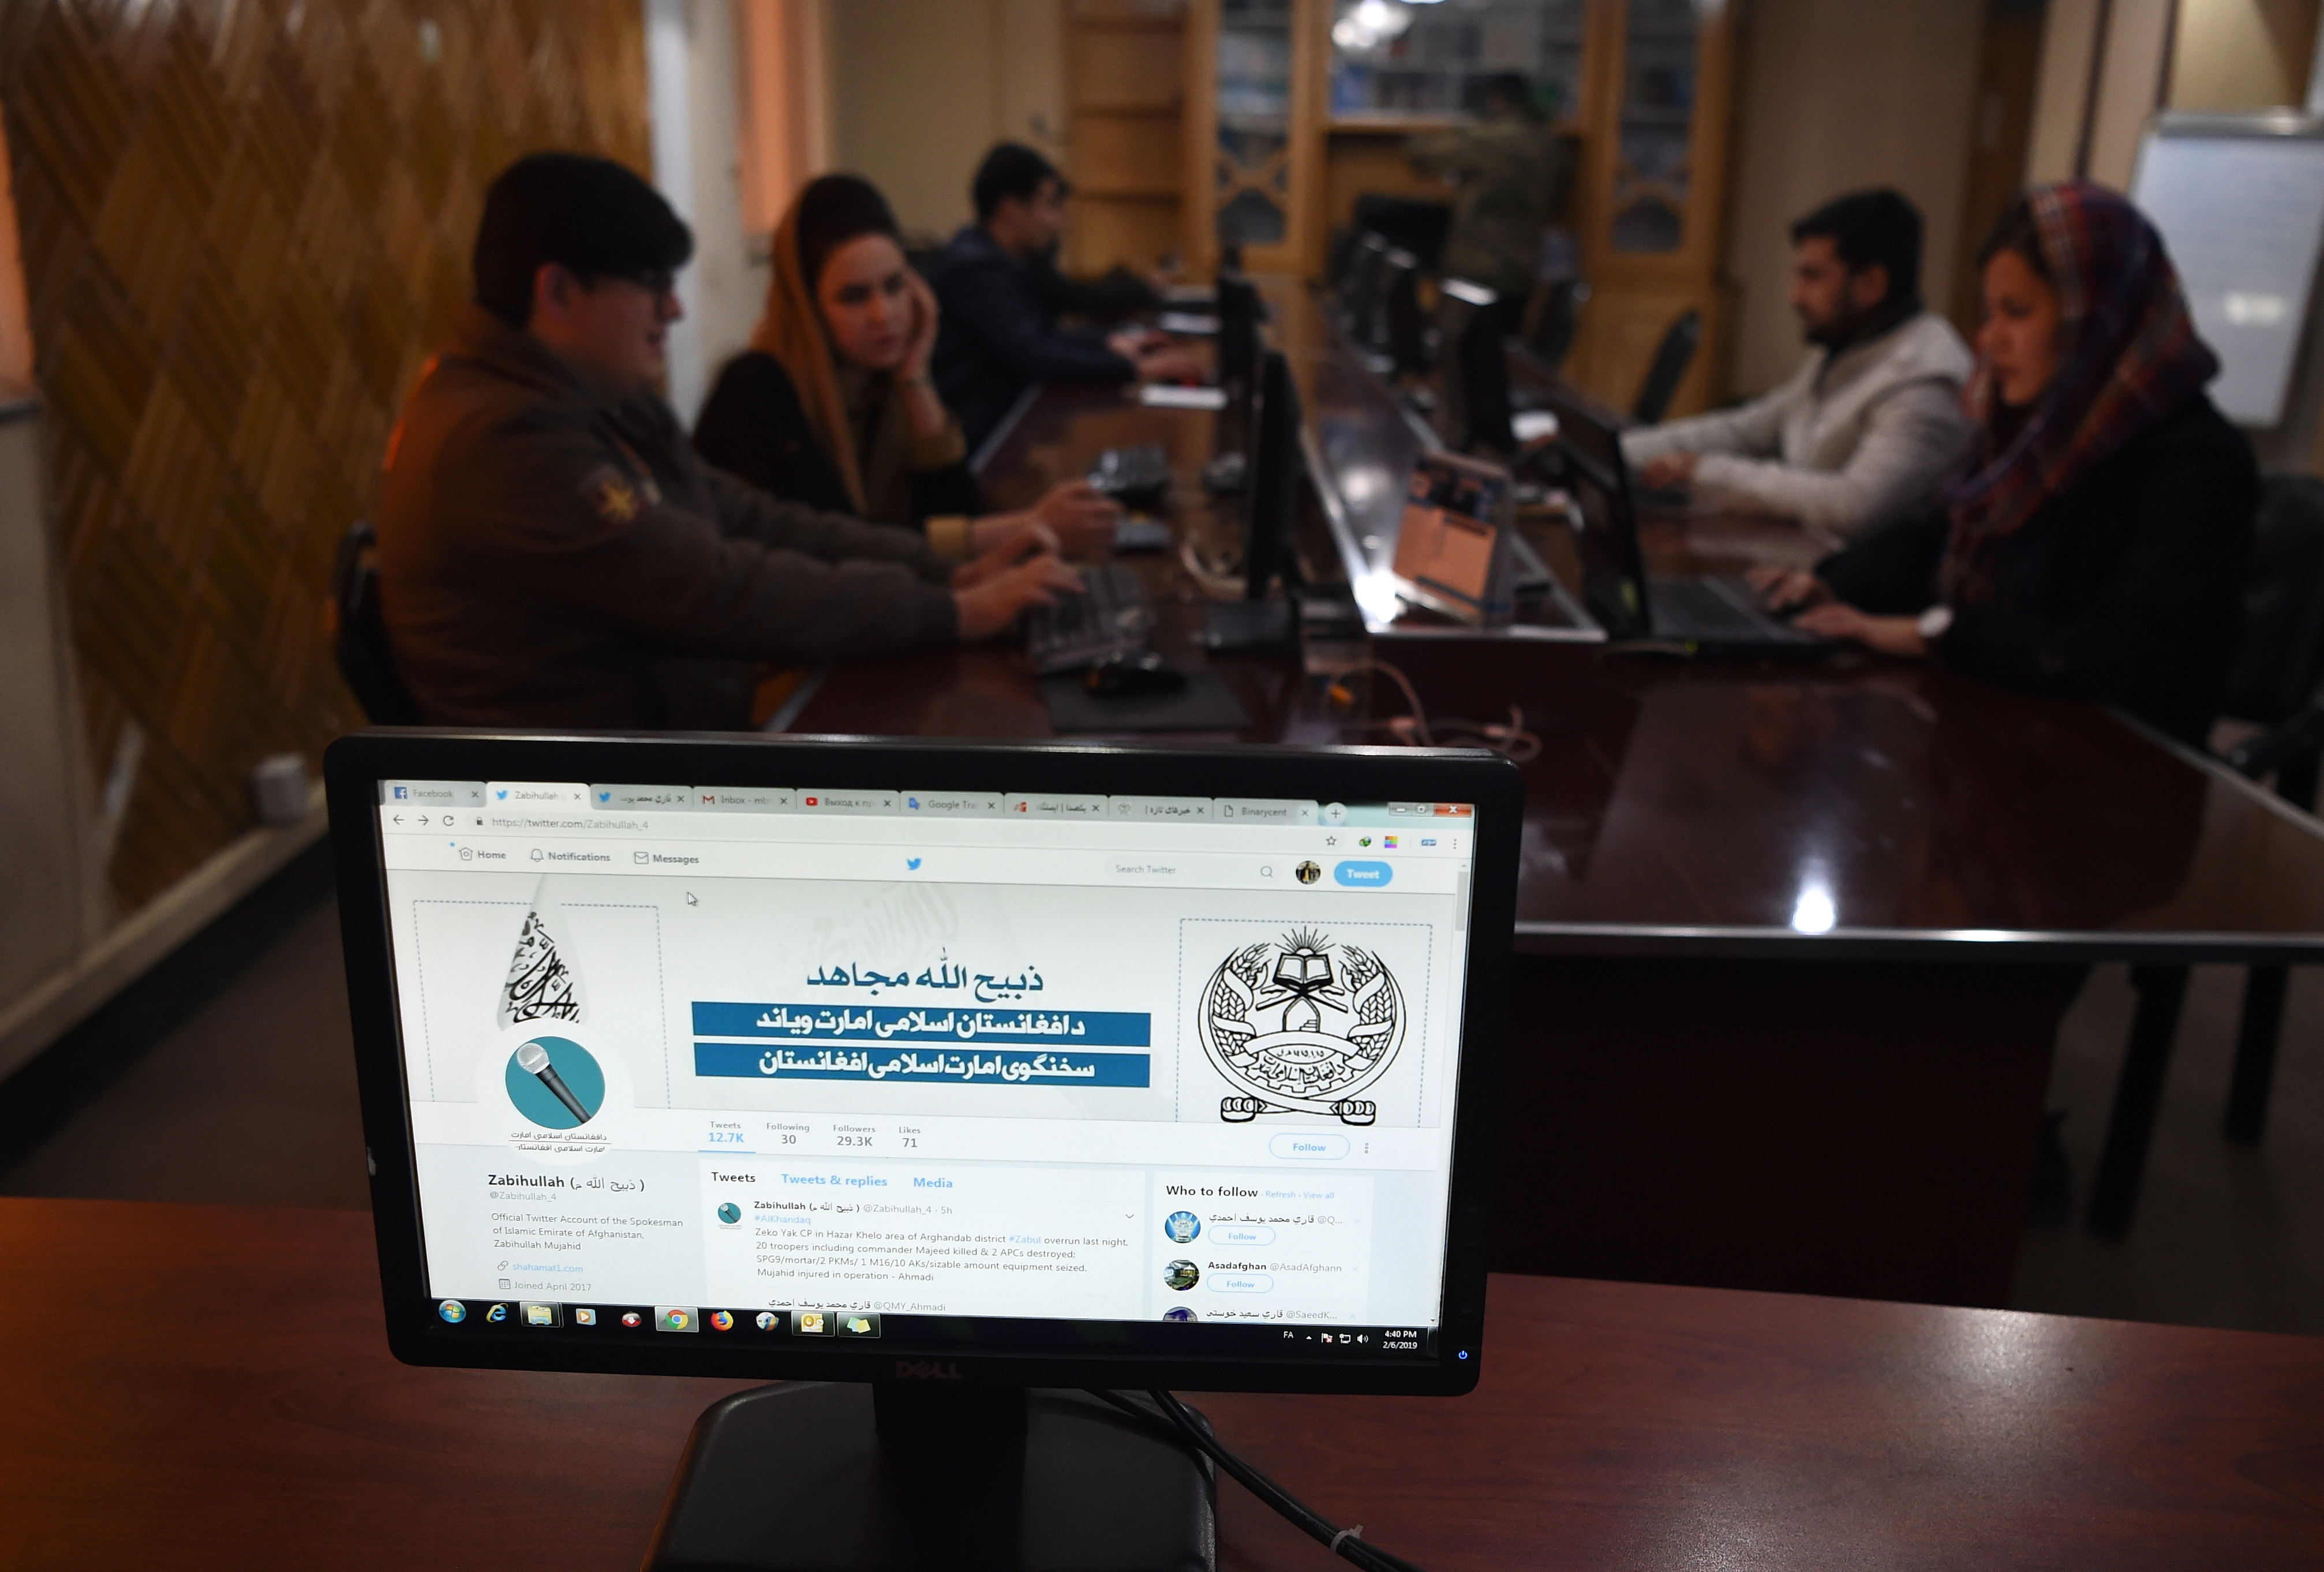 In this photo taken on Feb. 6, 2019, the Twitter page of Taliban spokesman Zabihullah Mujahid is pictured on a computer monitor in the newsroom at Maiwand TV station in Kabul.